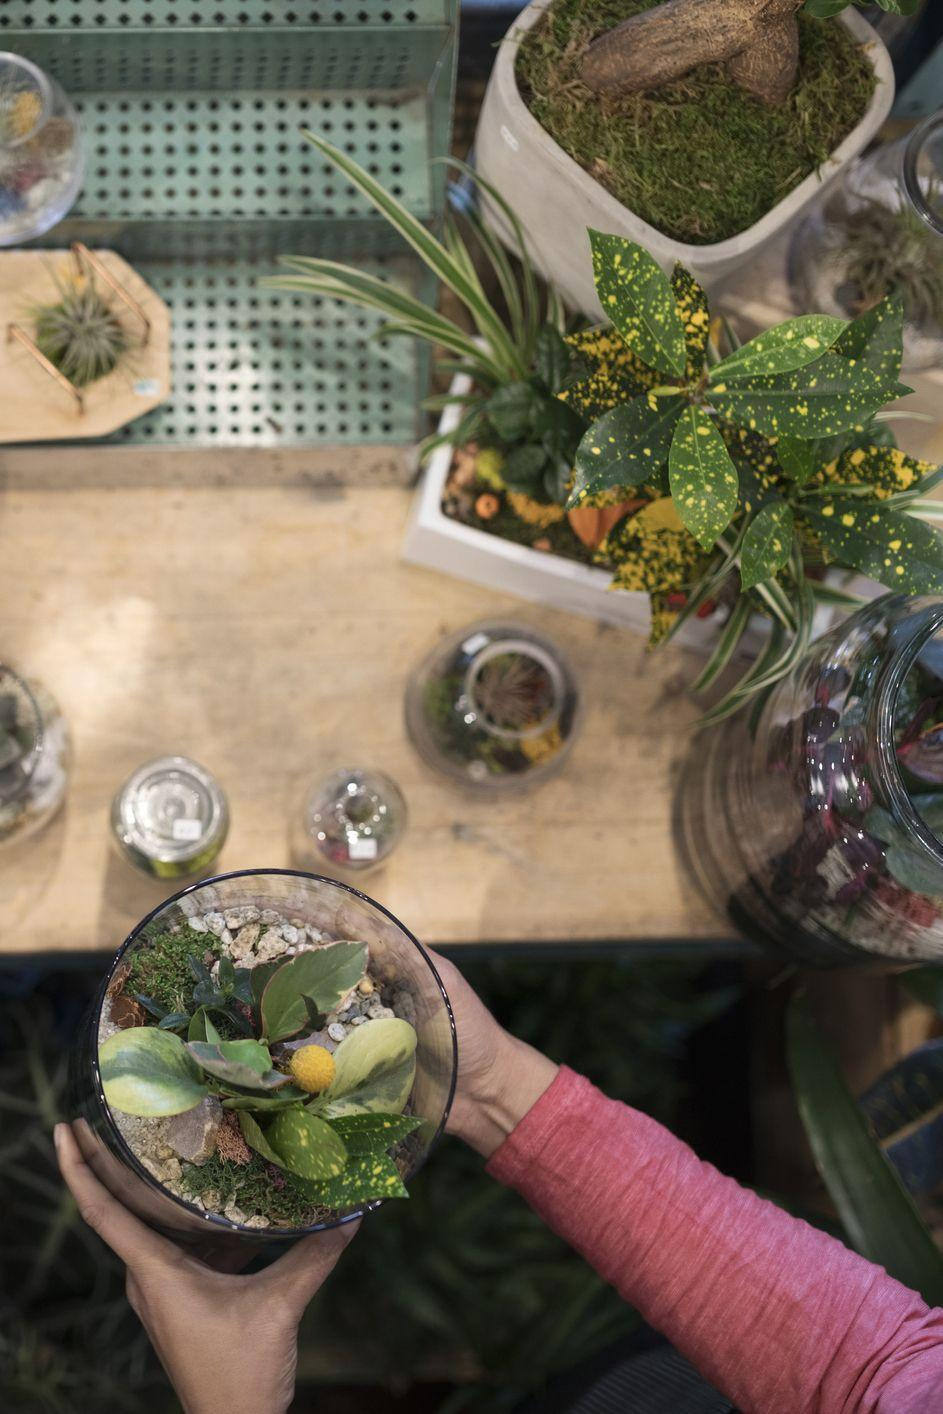 """<p>Lastminute.com - £60.00</p><p>Love booze? Got green fingers? Why not combine the two? On this workshop you'll learn how to design the little garden, the soil, the drainage, how to get your plants thriving, as well as aftercare and top tips to keep your plants healthy. After the demo is done, you'll learn how to make your own. Everything you need will be provided on the day.<br></p><p><a class=""""link rapid-noclick-resp"""" href=""""https://experiences.lastminute.com/terrarium-workshop-with-prosecco?acntb=brand&COBRANDED=LMNUK_AWINCOUK&awc=4329_1541087017_1c520591a203137b24a065fda7405578&dclid=CjkKEQjwyOreBRCIyoGa4ua41v4BEiQATX0Y8ZKYGPUmGWDxA_27HLhYoPVkTk2er5WrUDIyPja6igTw_wcB"""" rel=""""nofollow noopener"""" target=""""_blank"""" data-ylk=""""slk:SHOP NOW"""">SHOP NOW</a> </p>"""